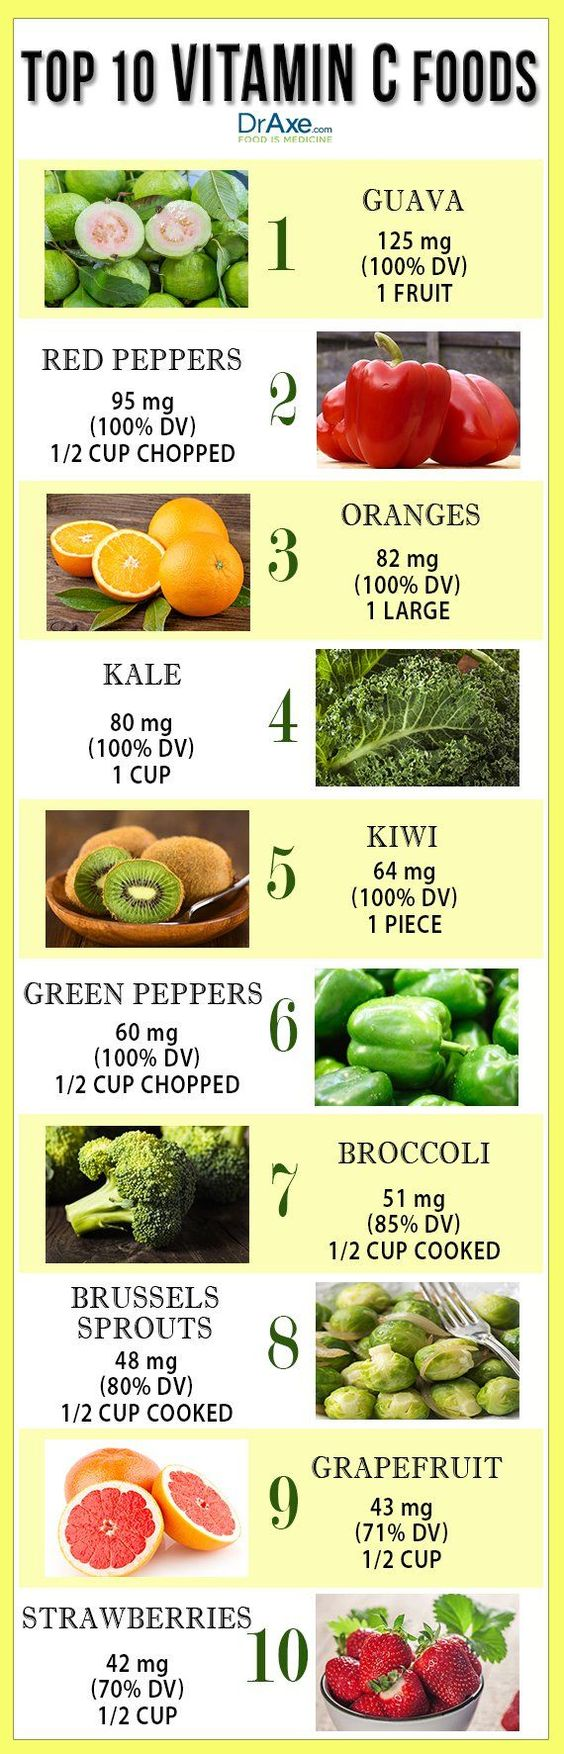 Top 10 Vitamin C Foods - DrAxe.com: